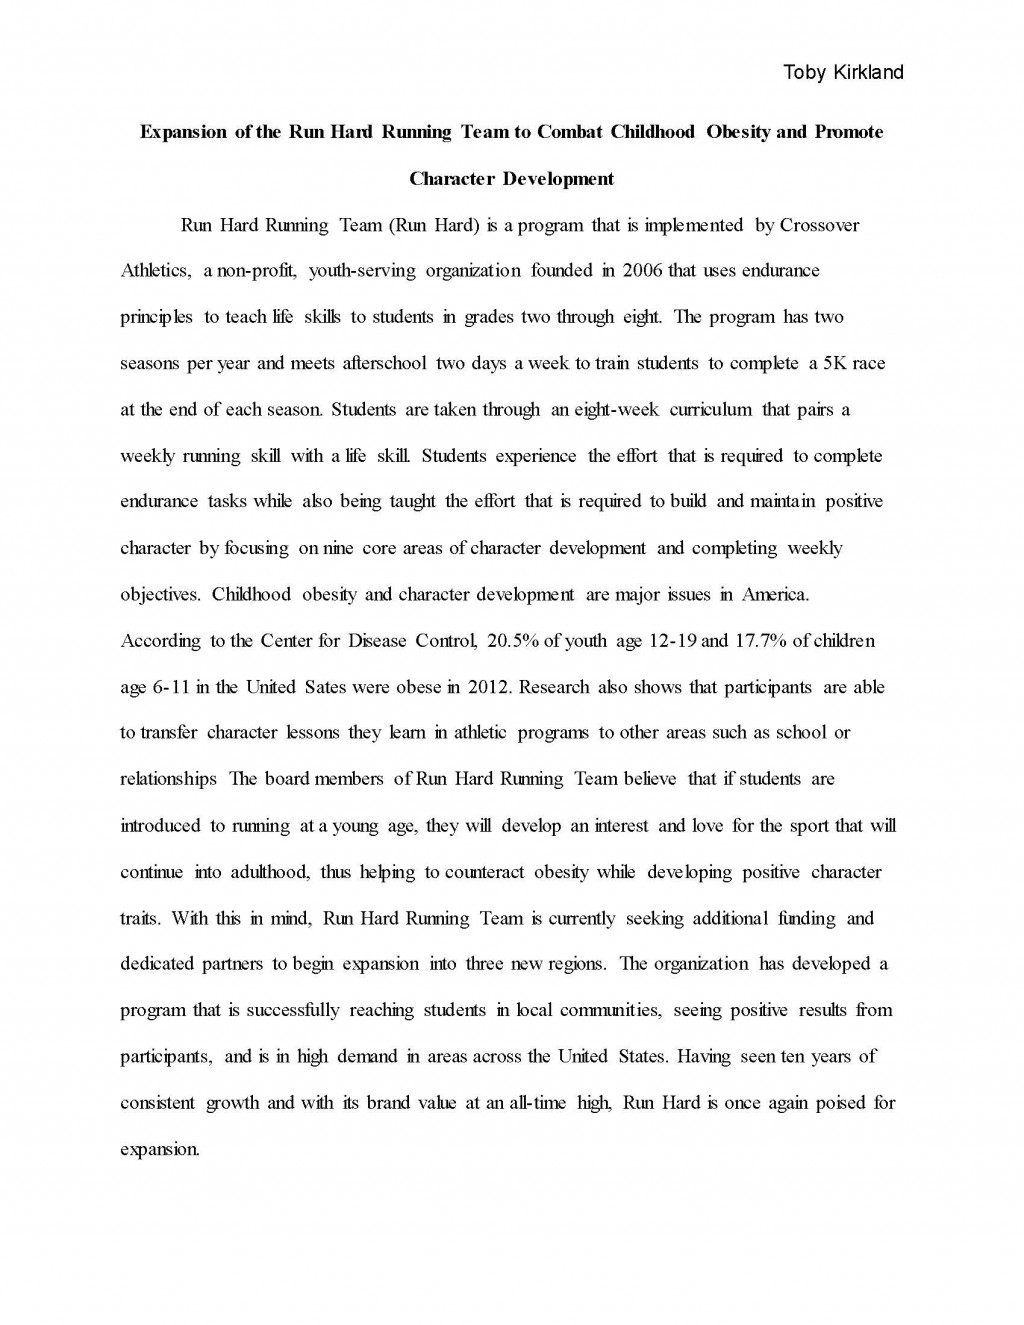 002 Toby Kirkland Final Grant Proposal Page 01 Argumentative Research Paper Childhood Imposing Obesity Large